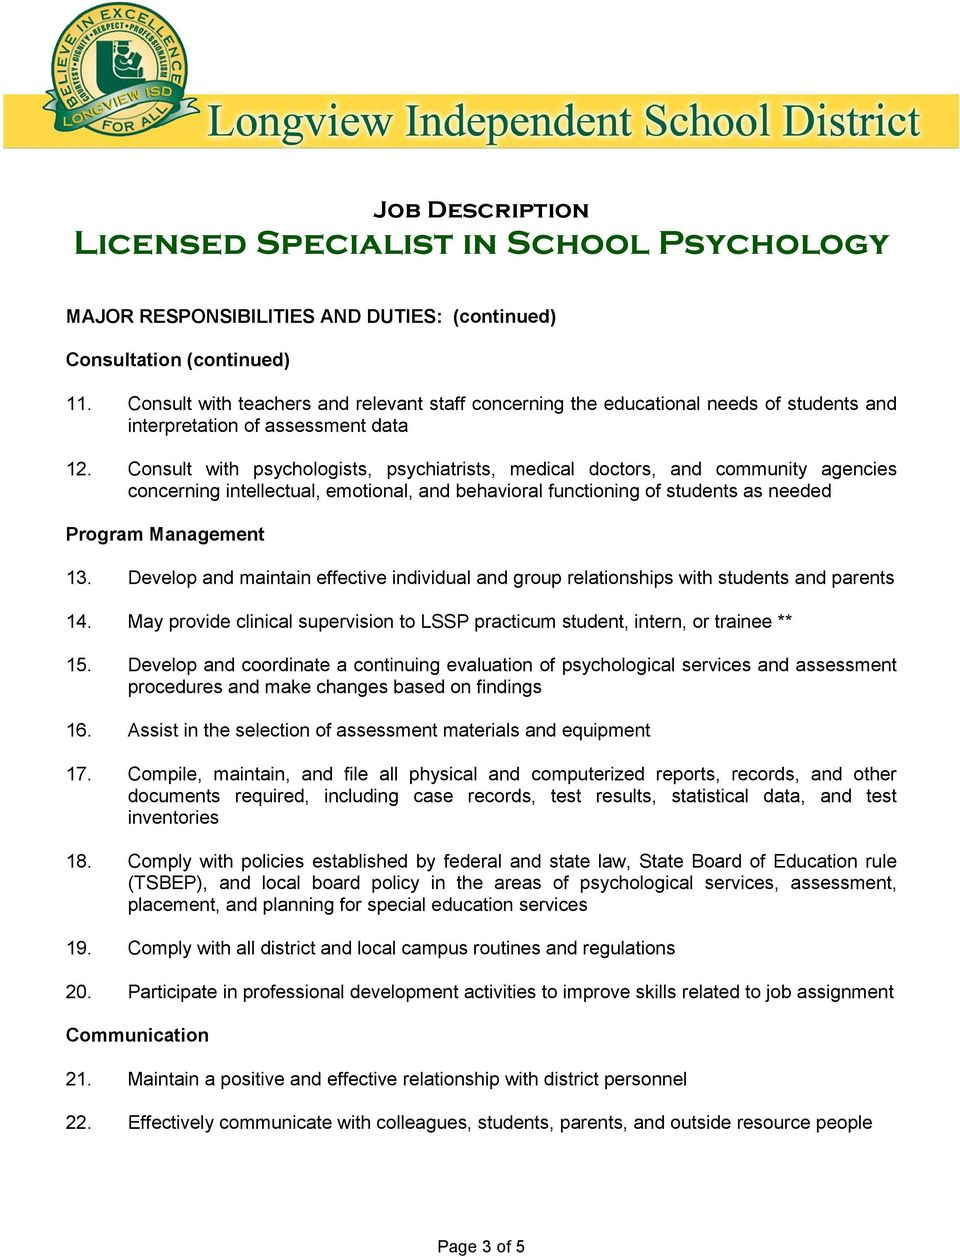 Consult with psychologists, psychiatrists, medical doctors, and community agencies concerning intellectual, emotional, and behavioral functioning of students as needed Program Management 13.